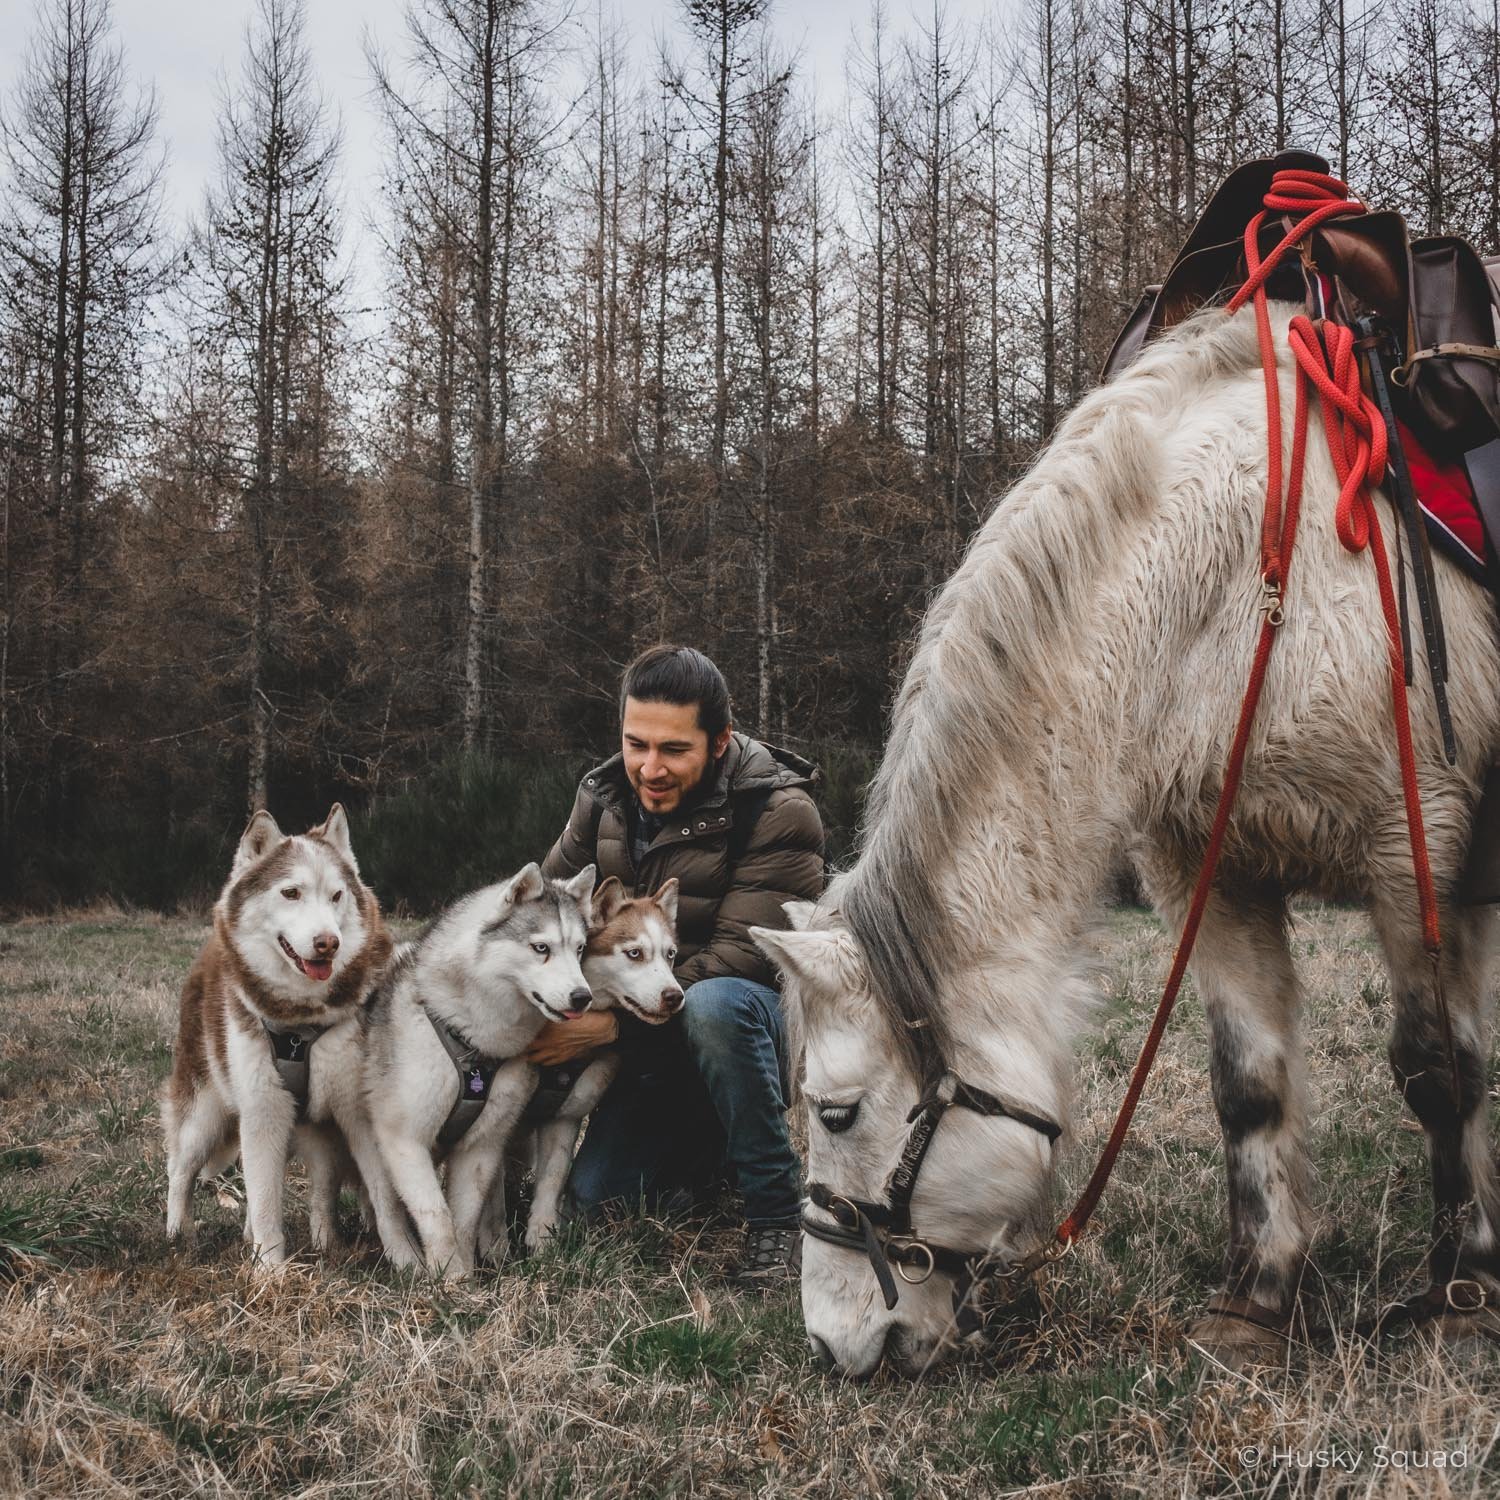 Jc with husky squad and horses in europe